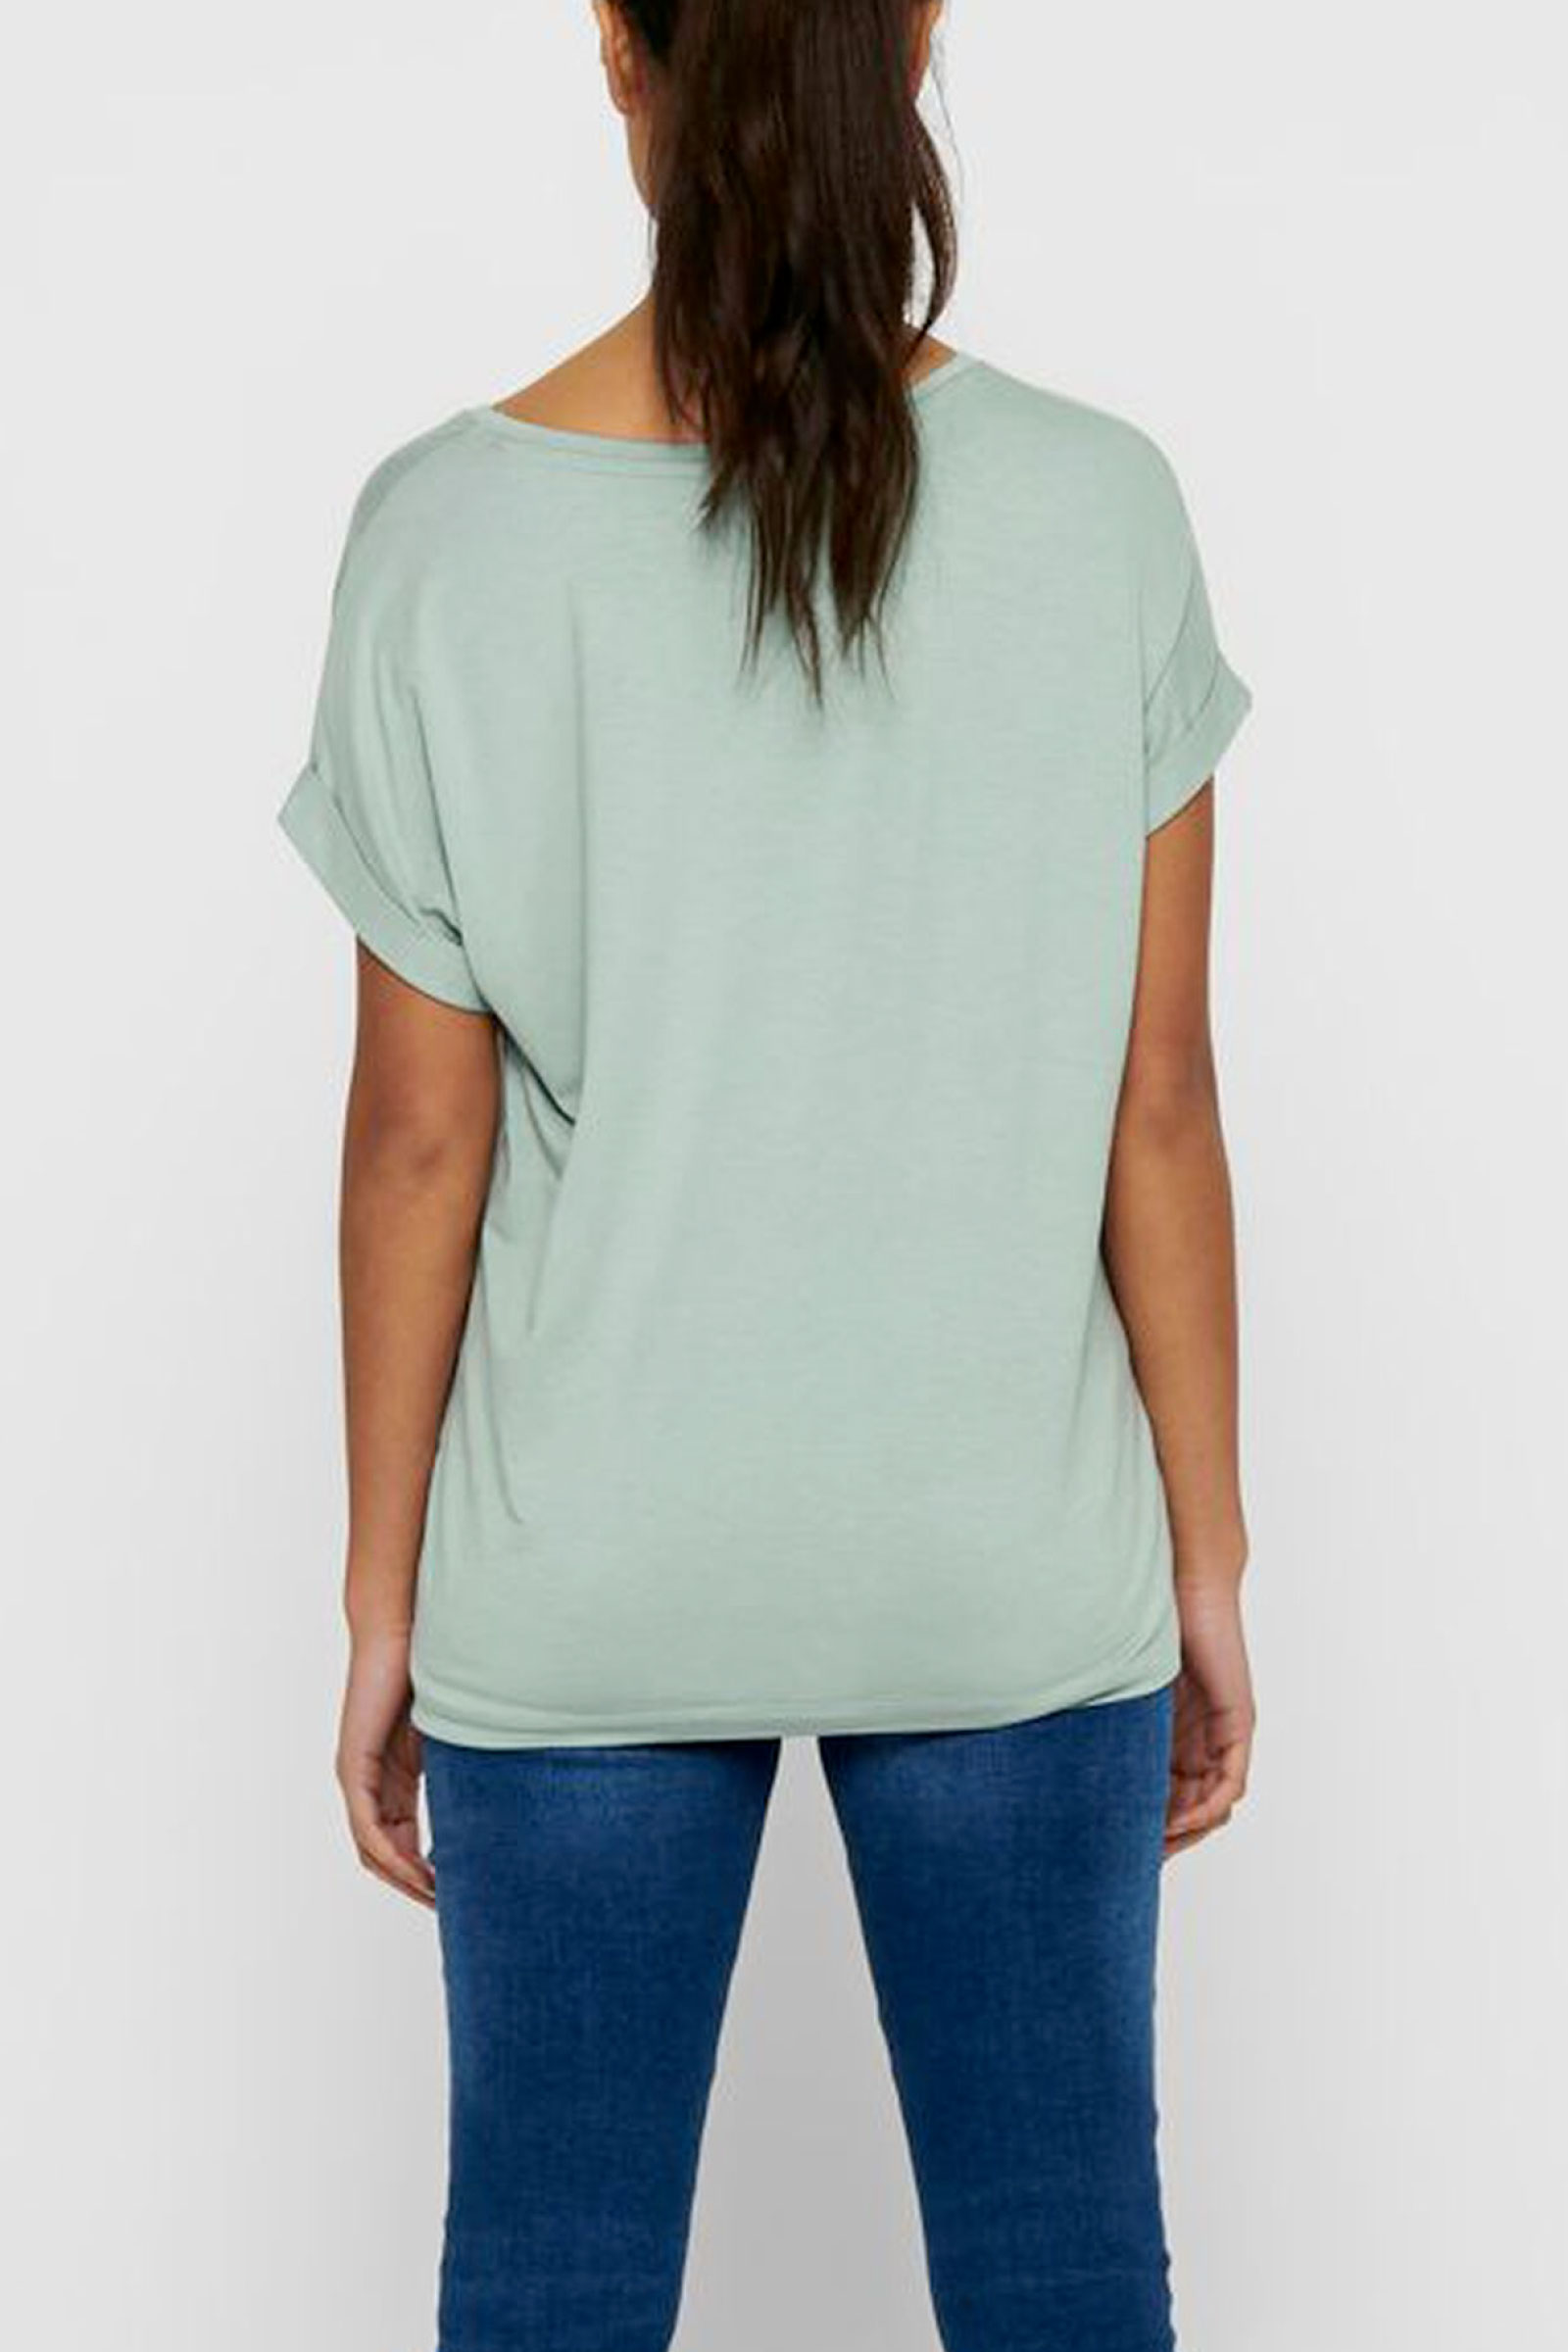 ONLY T-Shirt Donna Modello MOSTER ONLY | T-Shirt | 15106662Jadeite